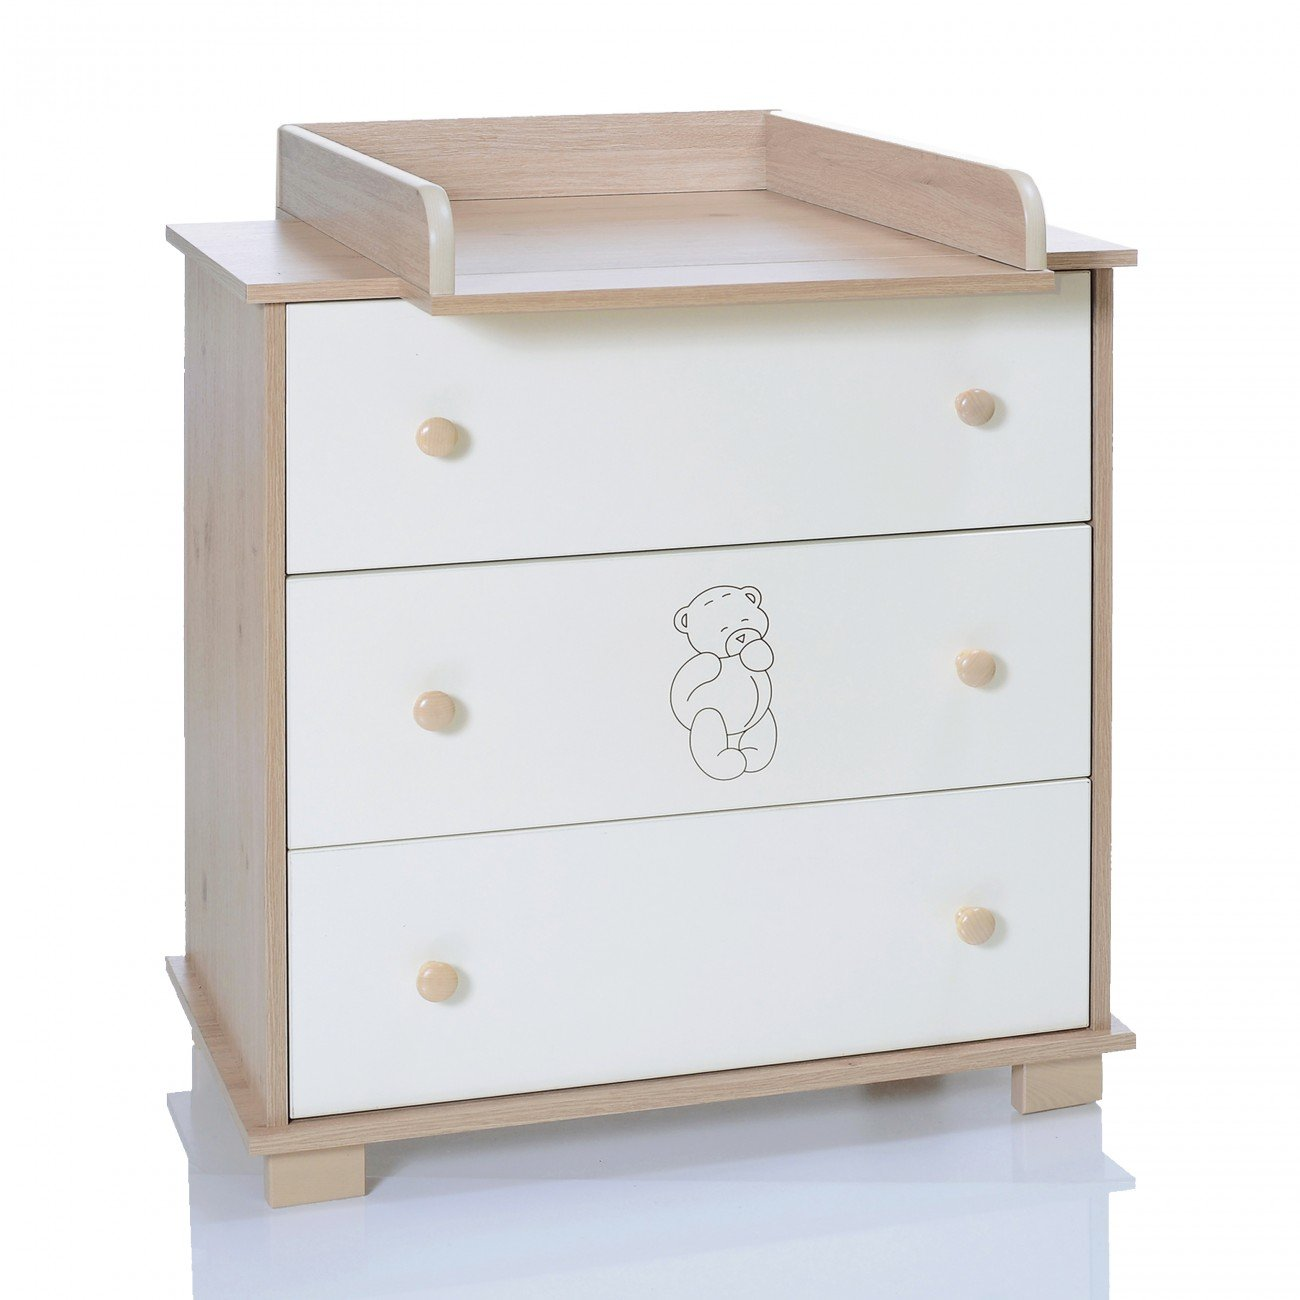 Baby Changing Chest Bear - Nursery Furniture Changer Unit With 3 Drawers - Baby Changing Table removeable LCP Kids 69